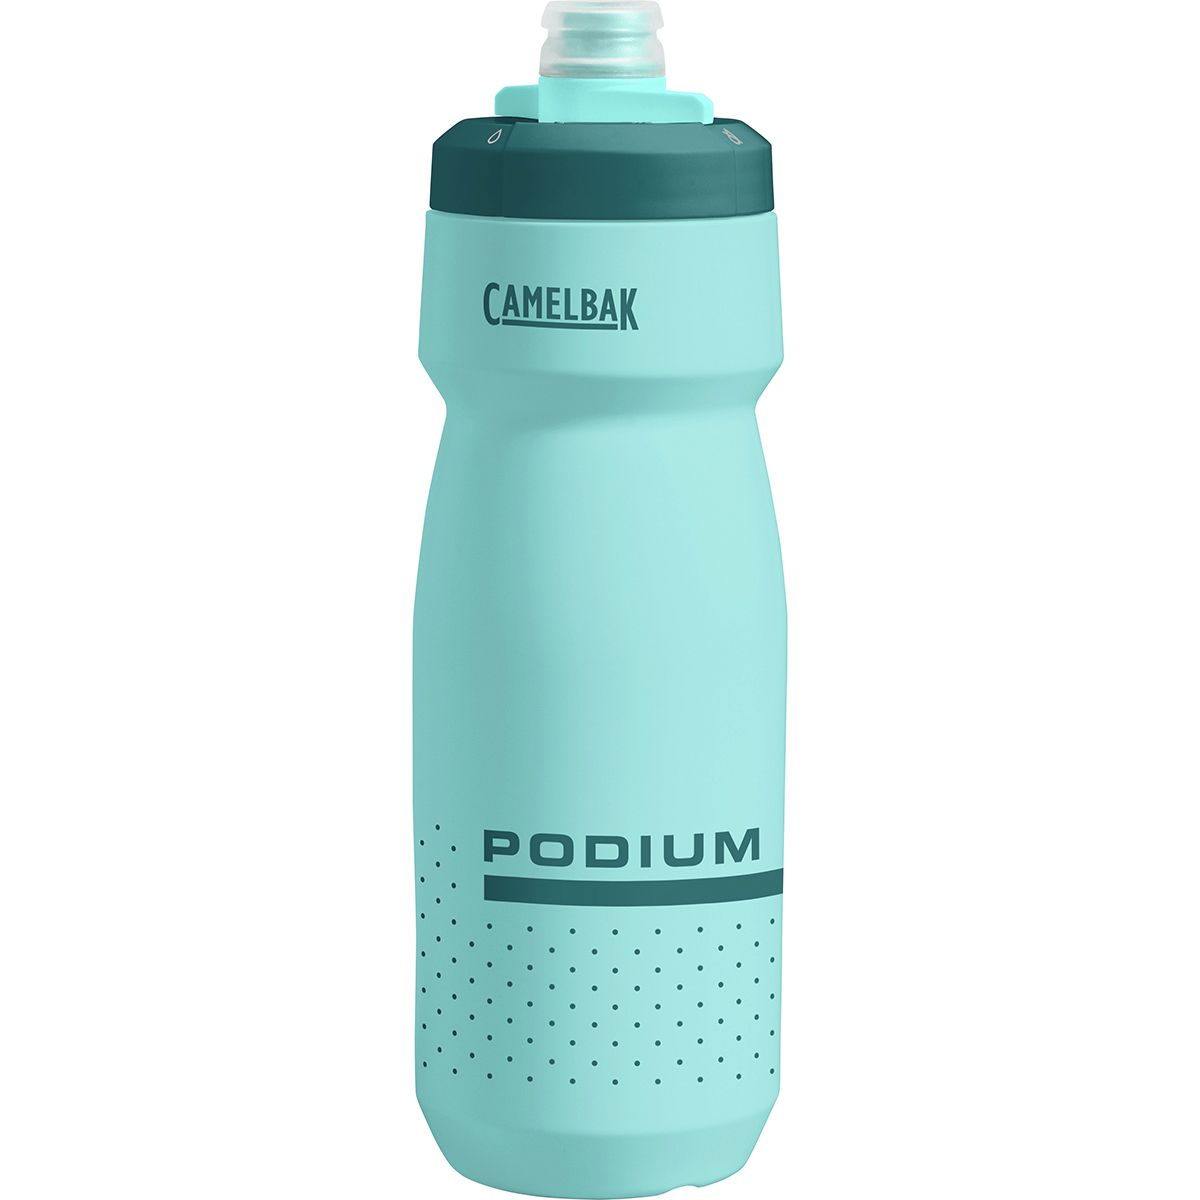 CamelBak Podium Bottle 24oz